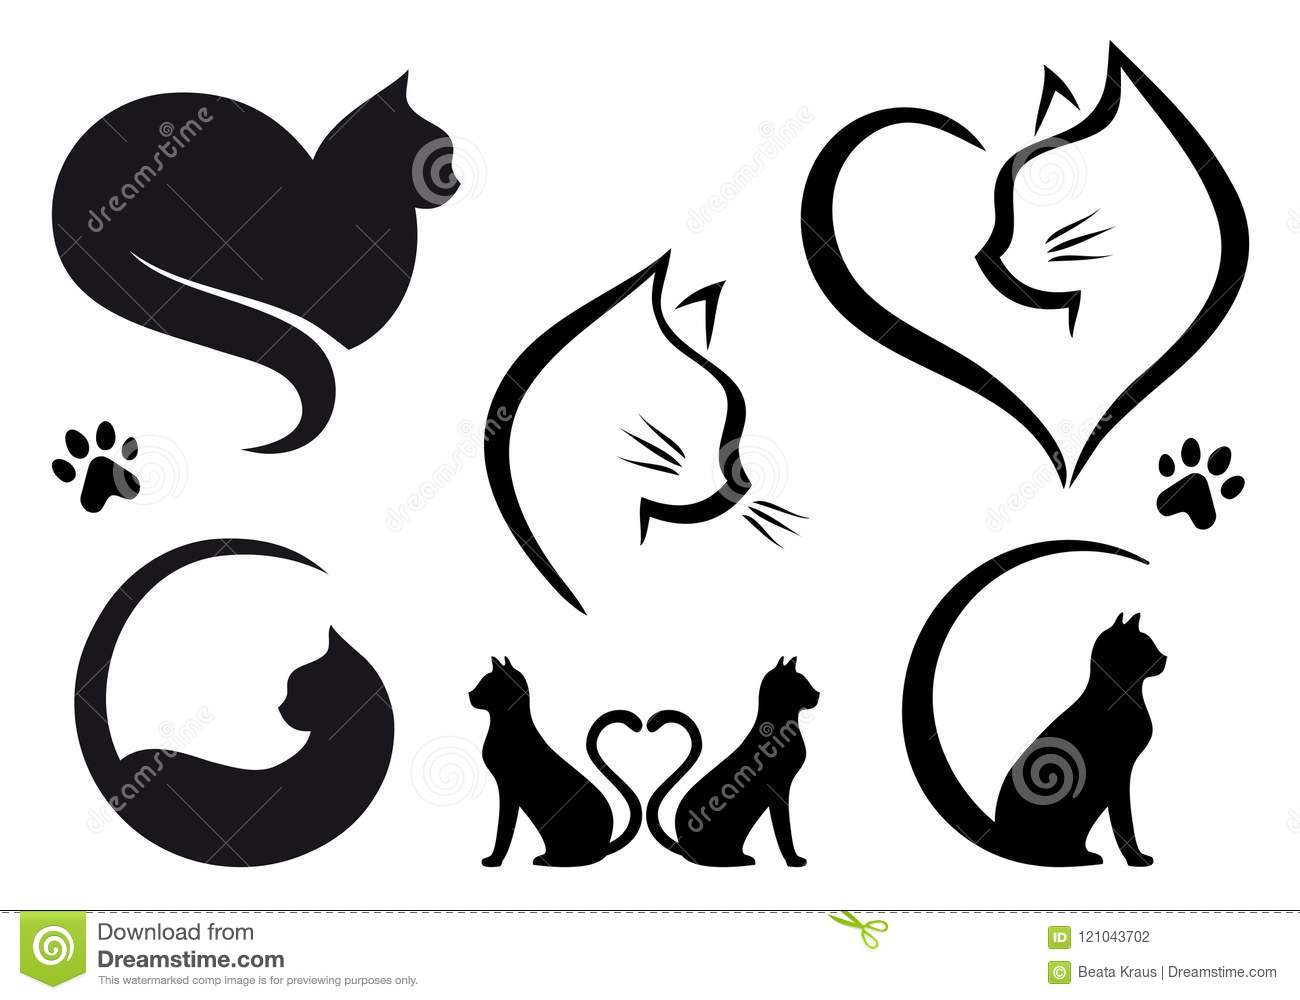 Conception de logo de chat, ensemble de vecteur